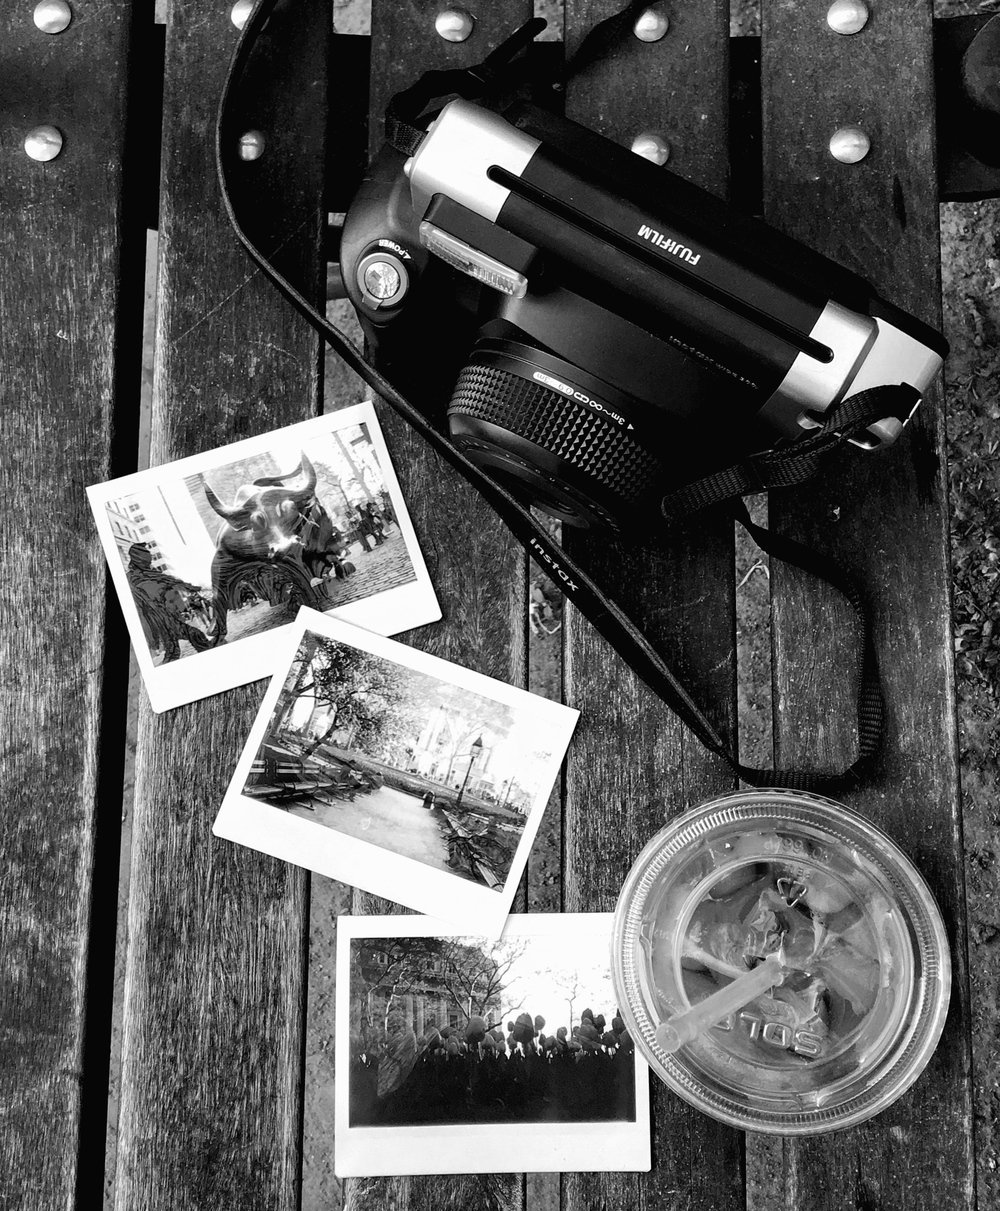 A Fujifilm Instax scene while taking a brief stop in New York for media activities... black and white suited the mood!